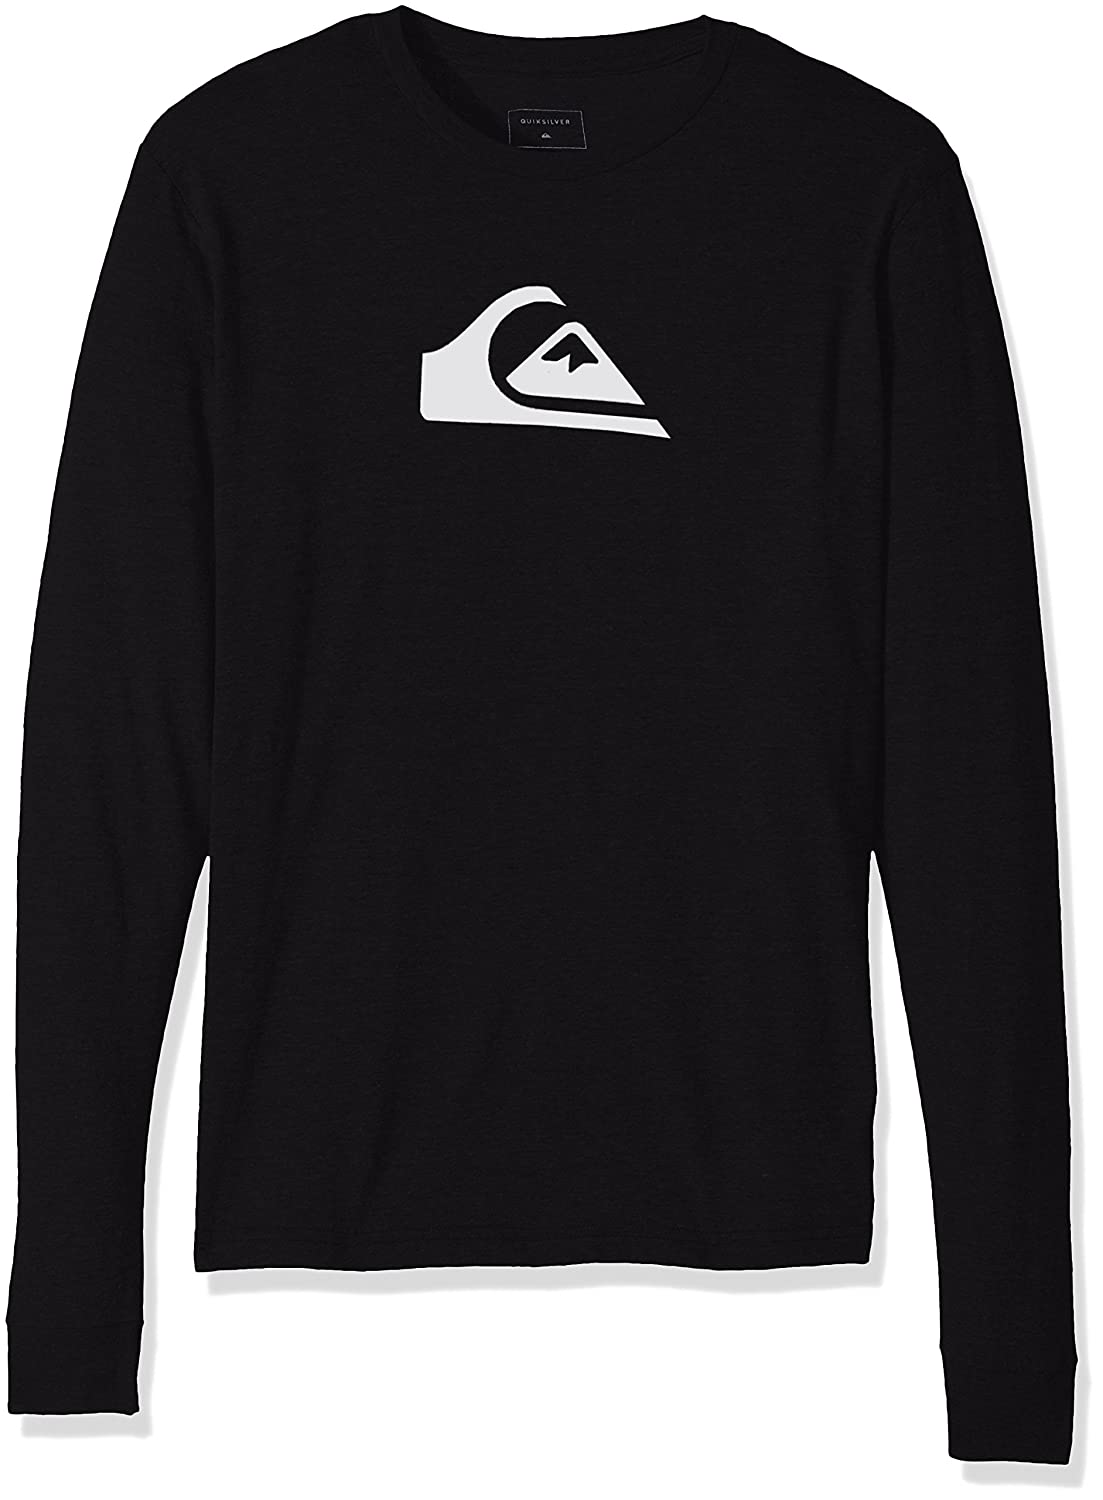 Wholesale Quiksilver Men's Mountain and Wave Long Sleeve Tee T-Shirt for sale